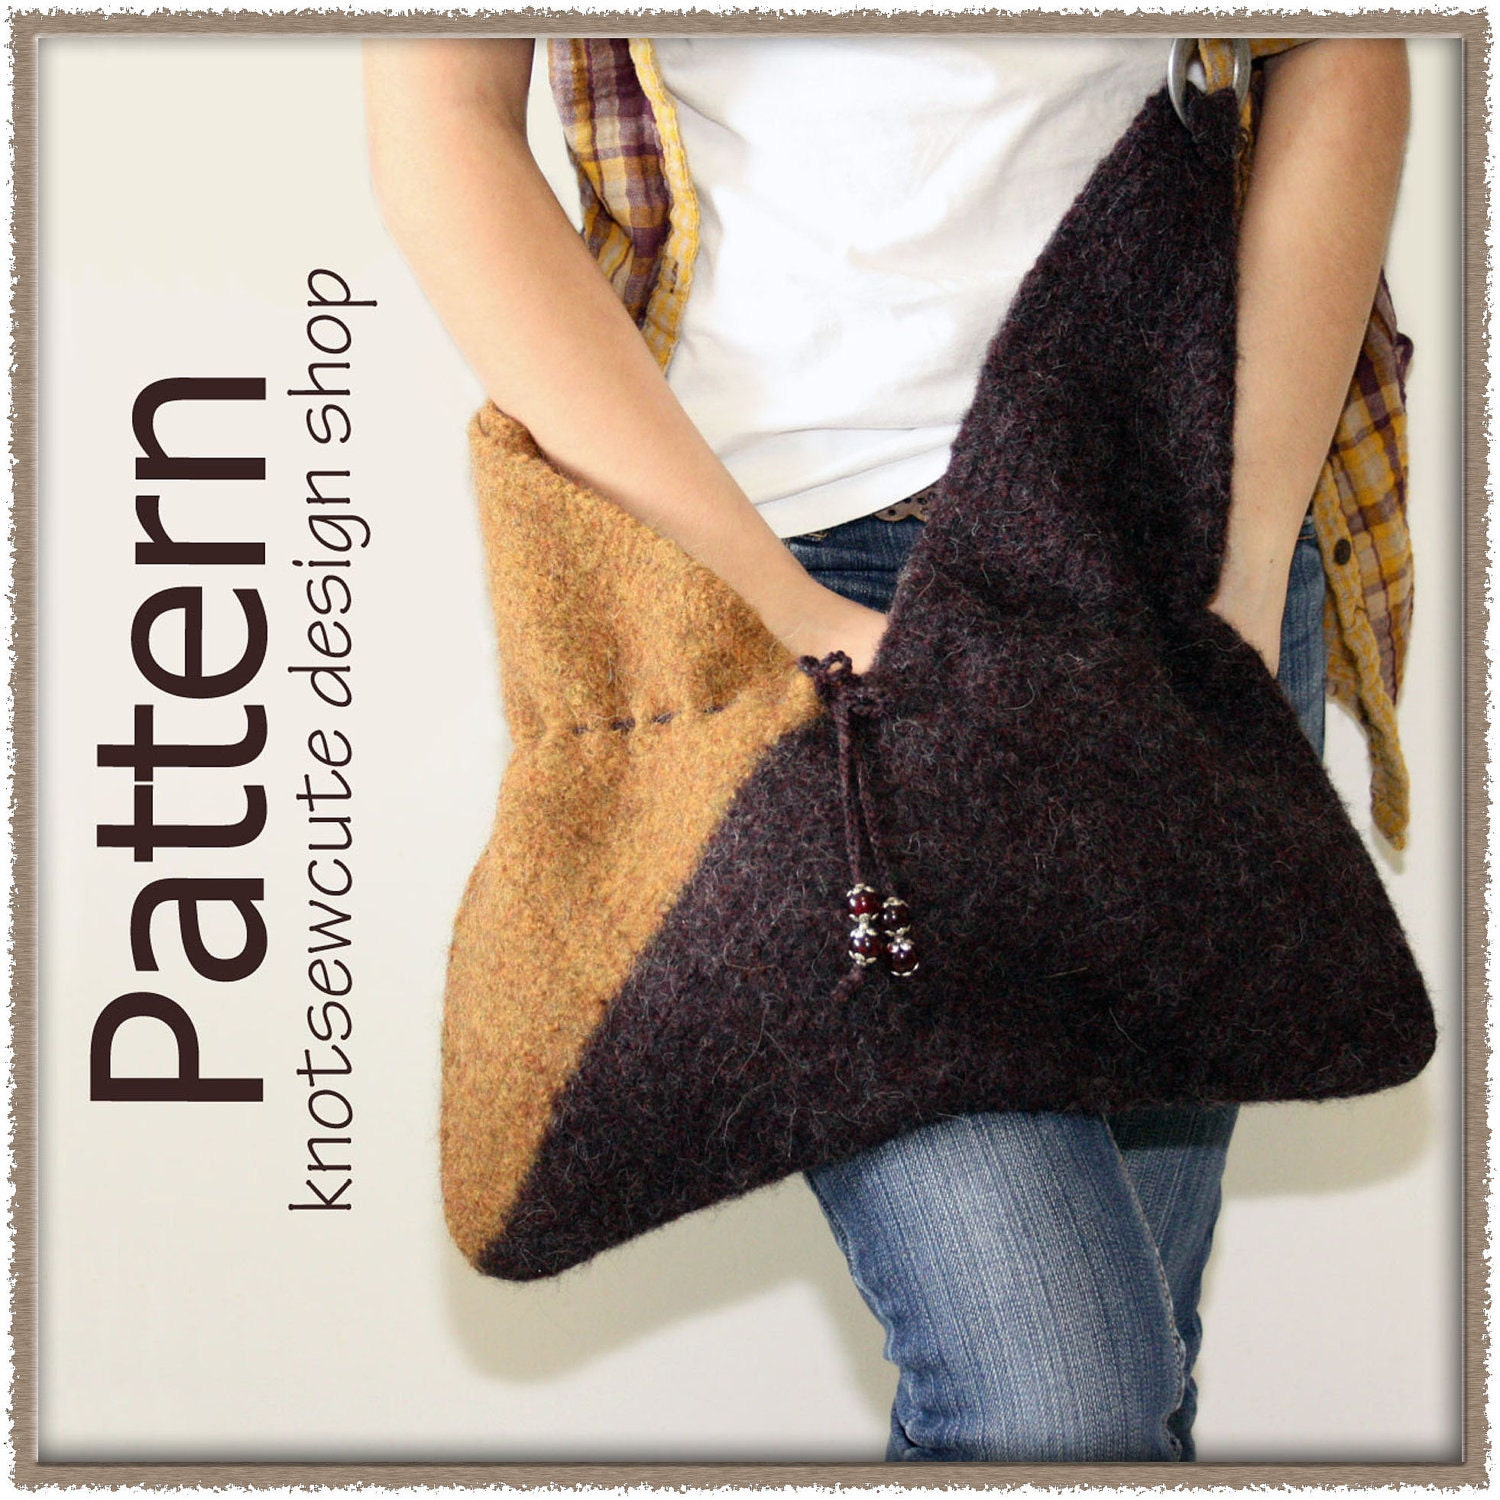 Purse Patterns - Crochet, Quilts, Leather, Embroidery - Free Patterns